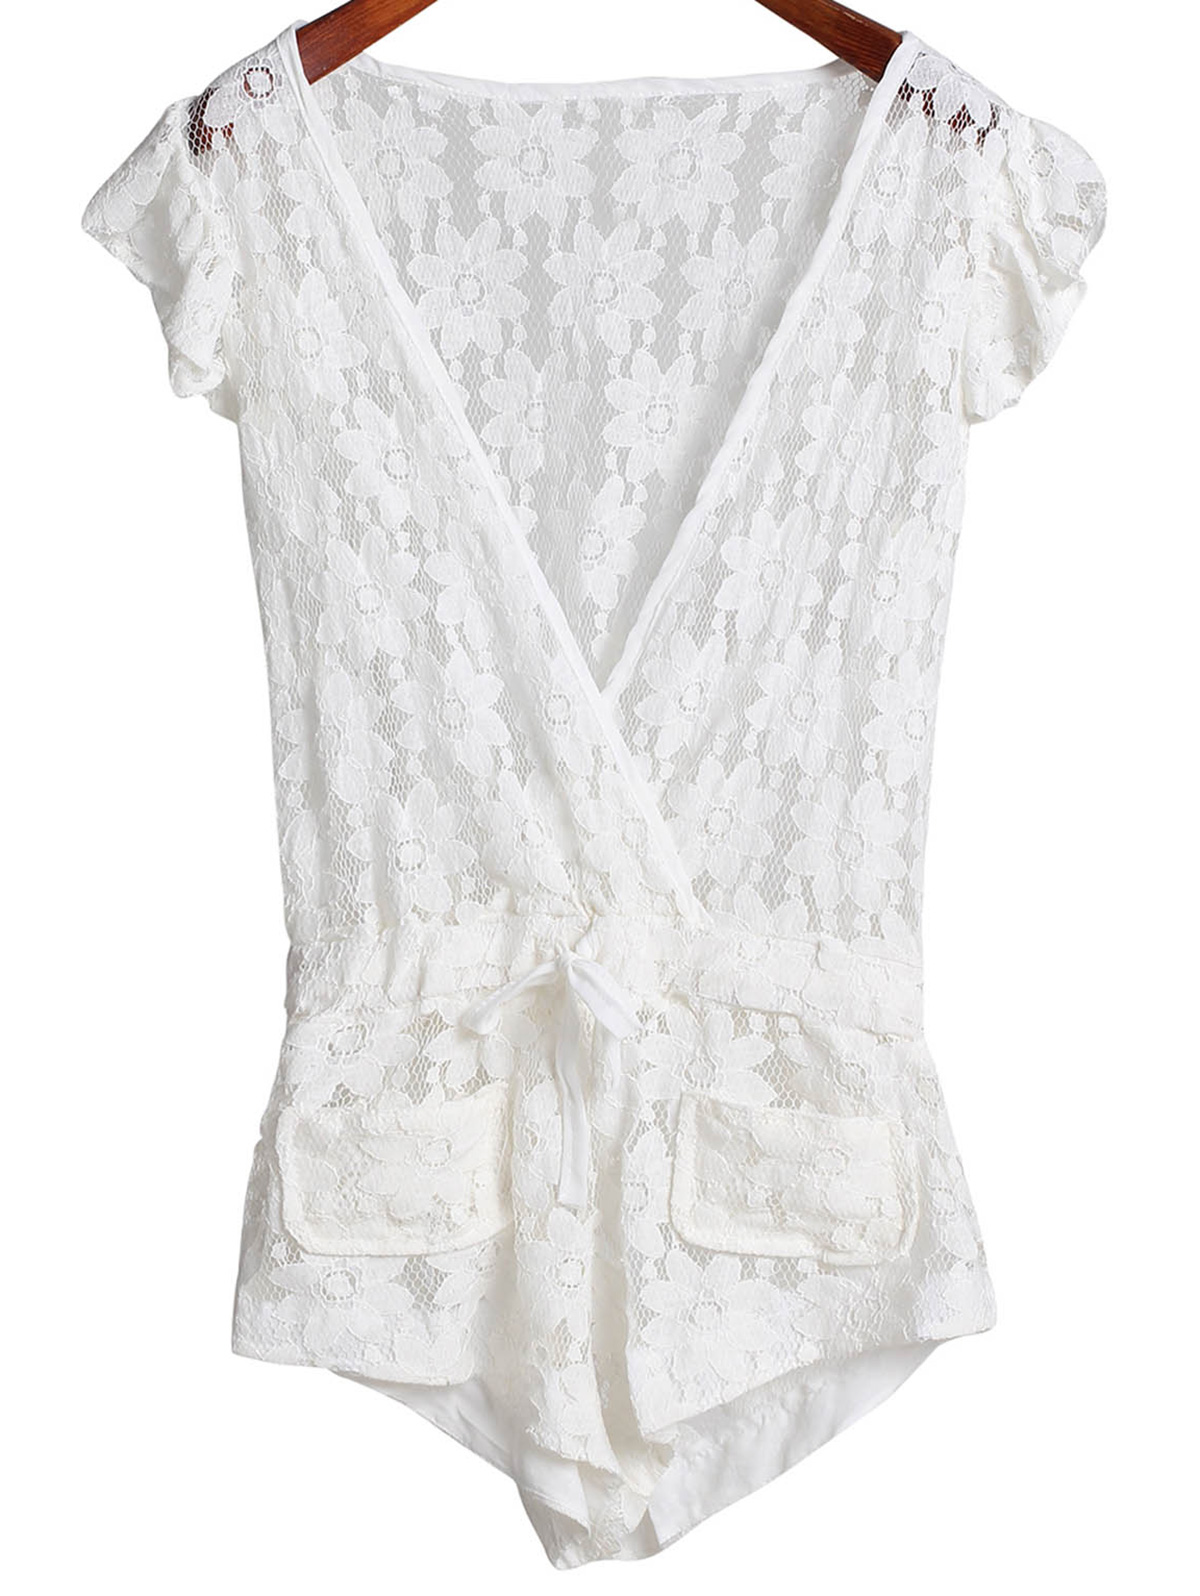 Deep V Neck Sleeveless Crochet Flower Romper Cover-Up